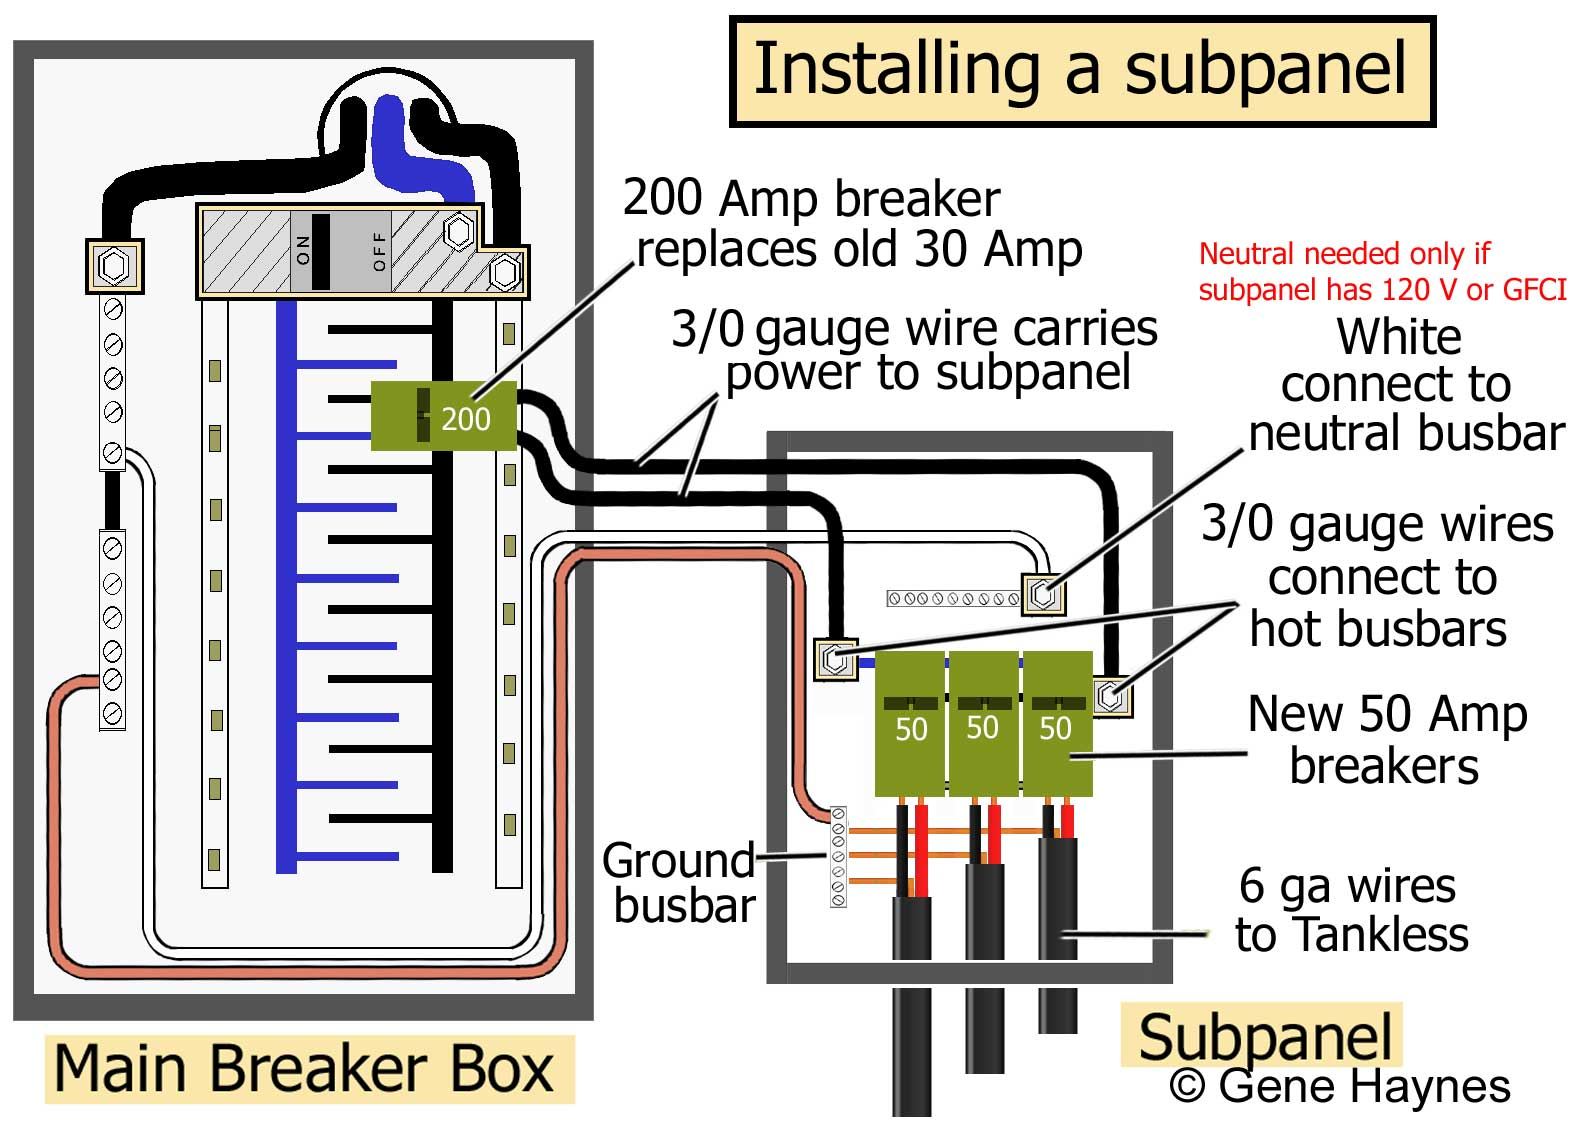 How to install a subpanel how to install main lug 150 amp breaker uses 20 wire neutral wire needed only if subpanel has 120volt breakers or gfci ground wire required for all installations keyboard keysfo Gallery